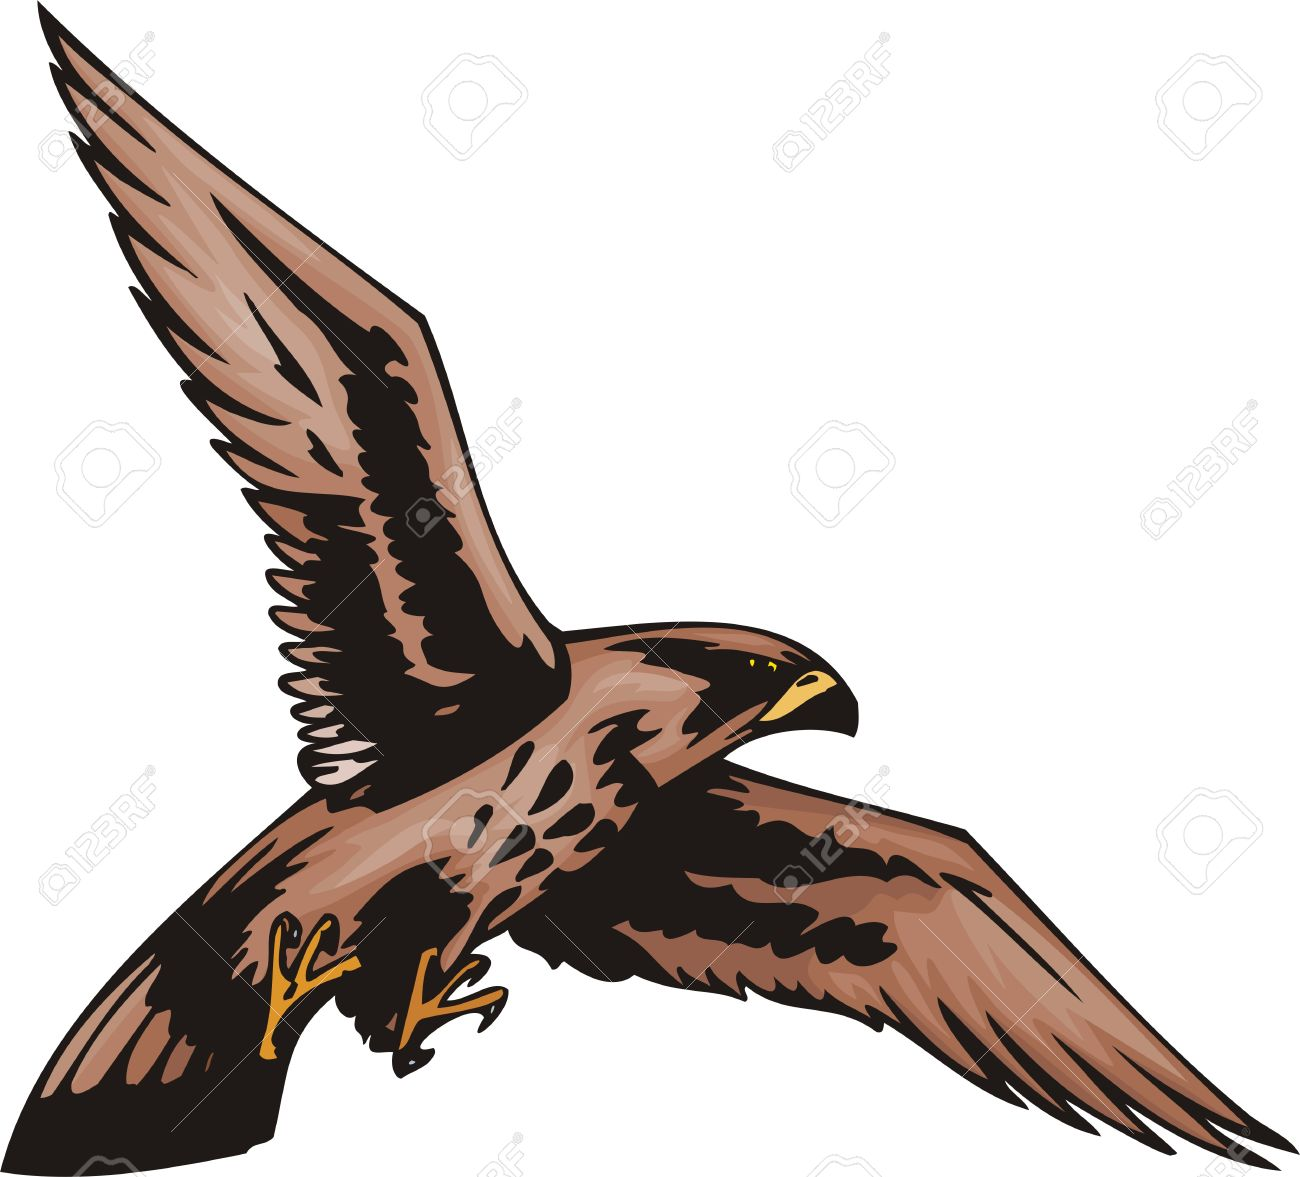 Sea Eagle clipart #11, Download drawings